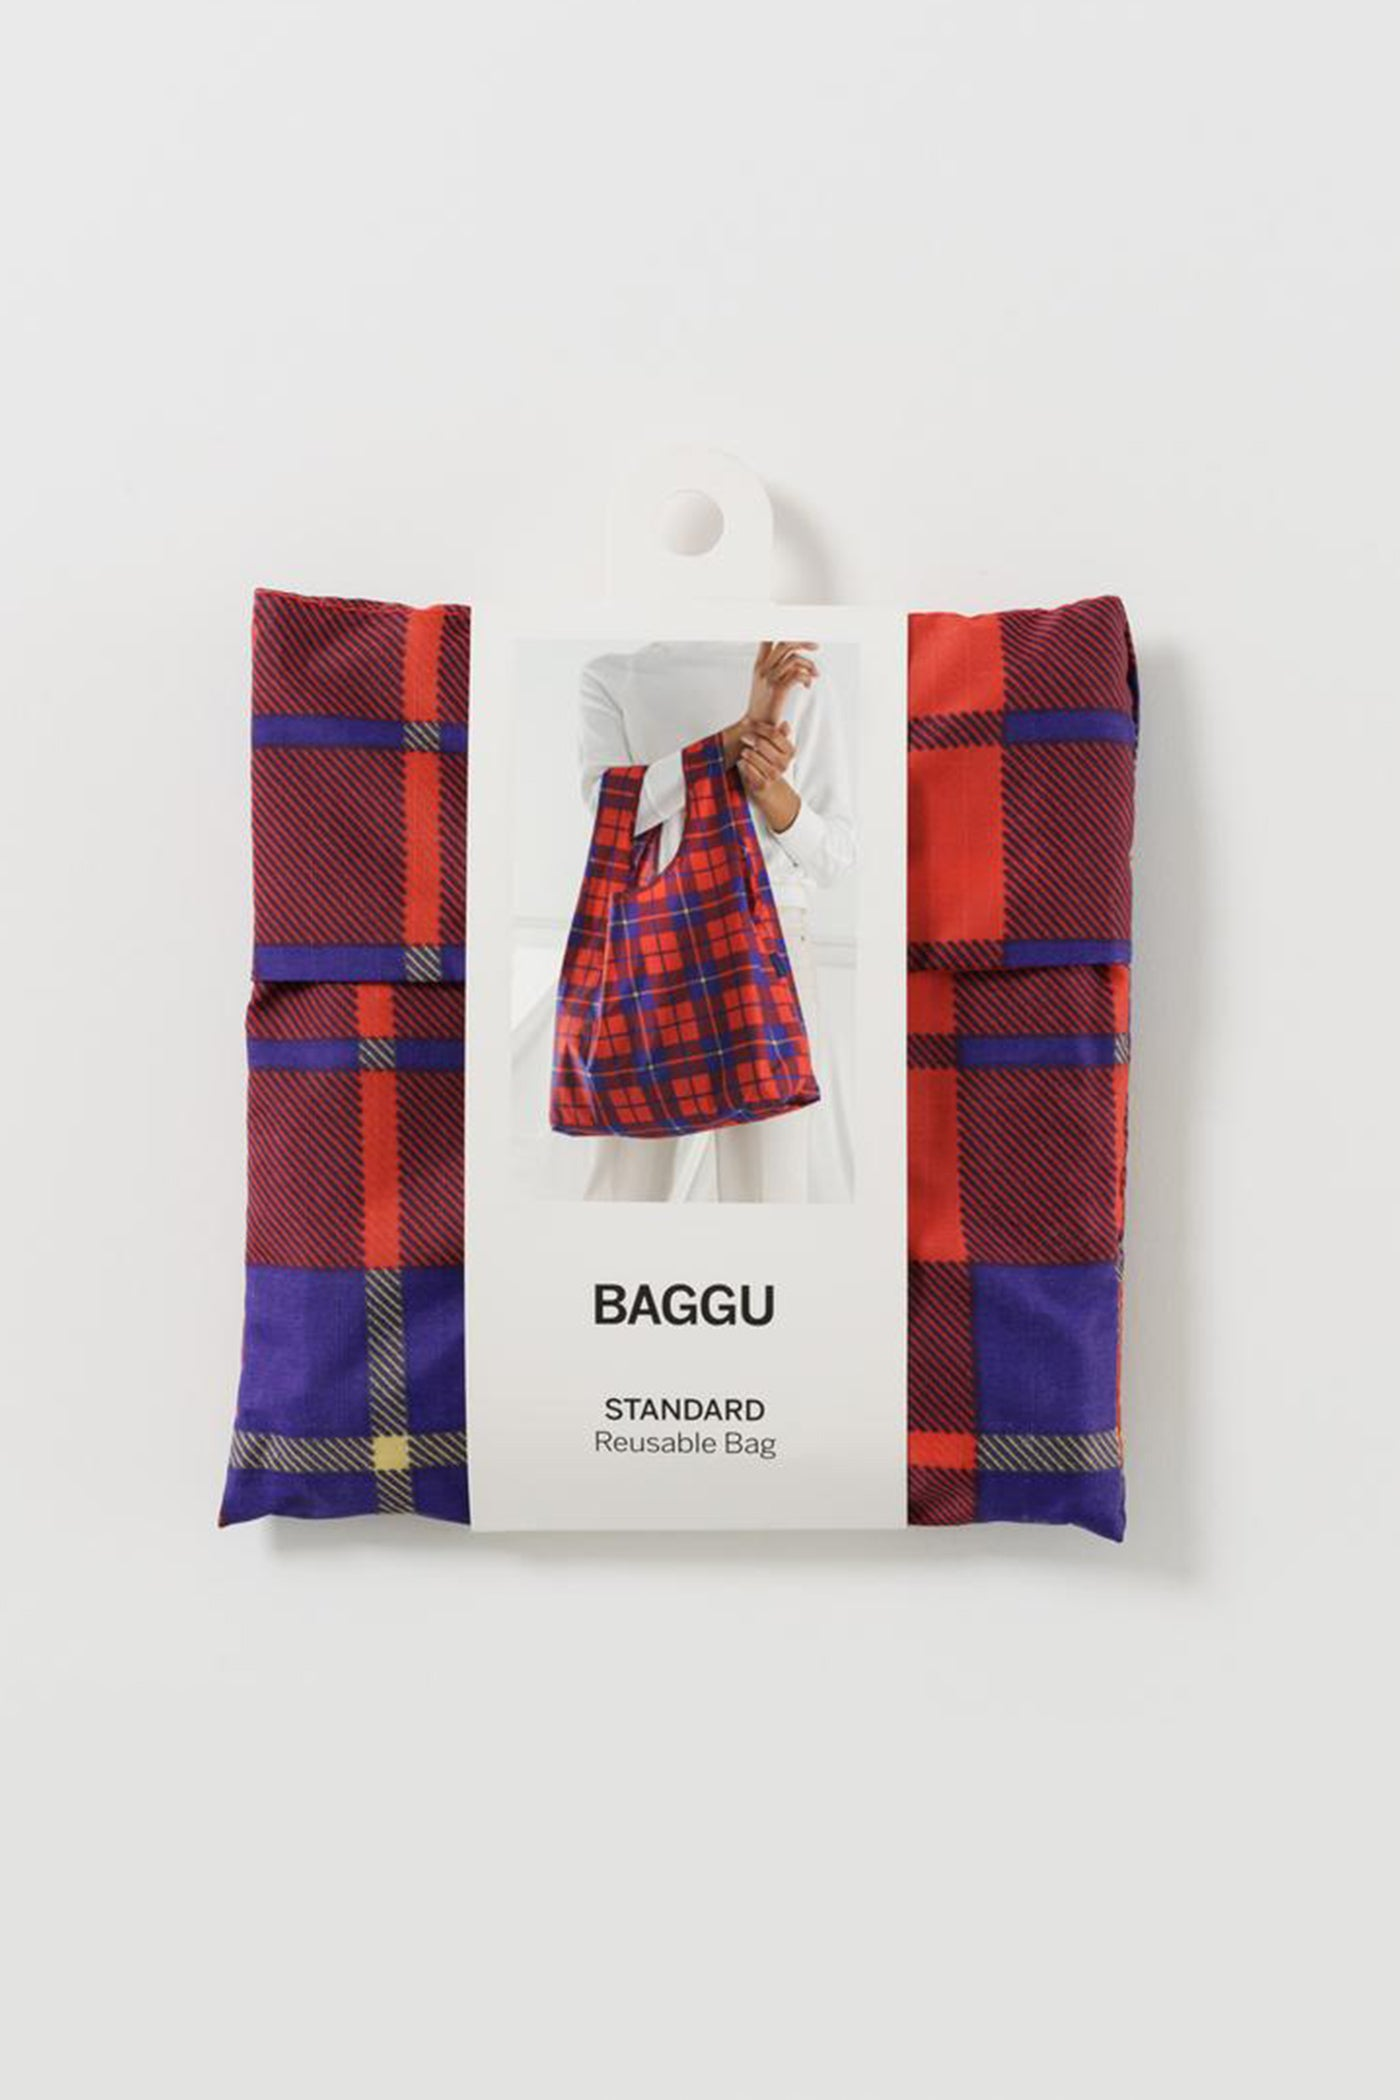 Red Tartan Reusable Bag by Baggu